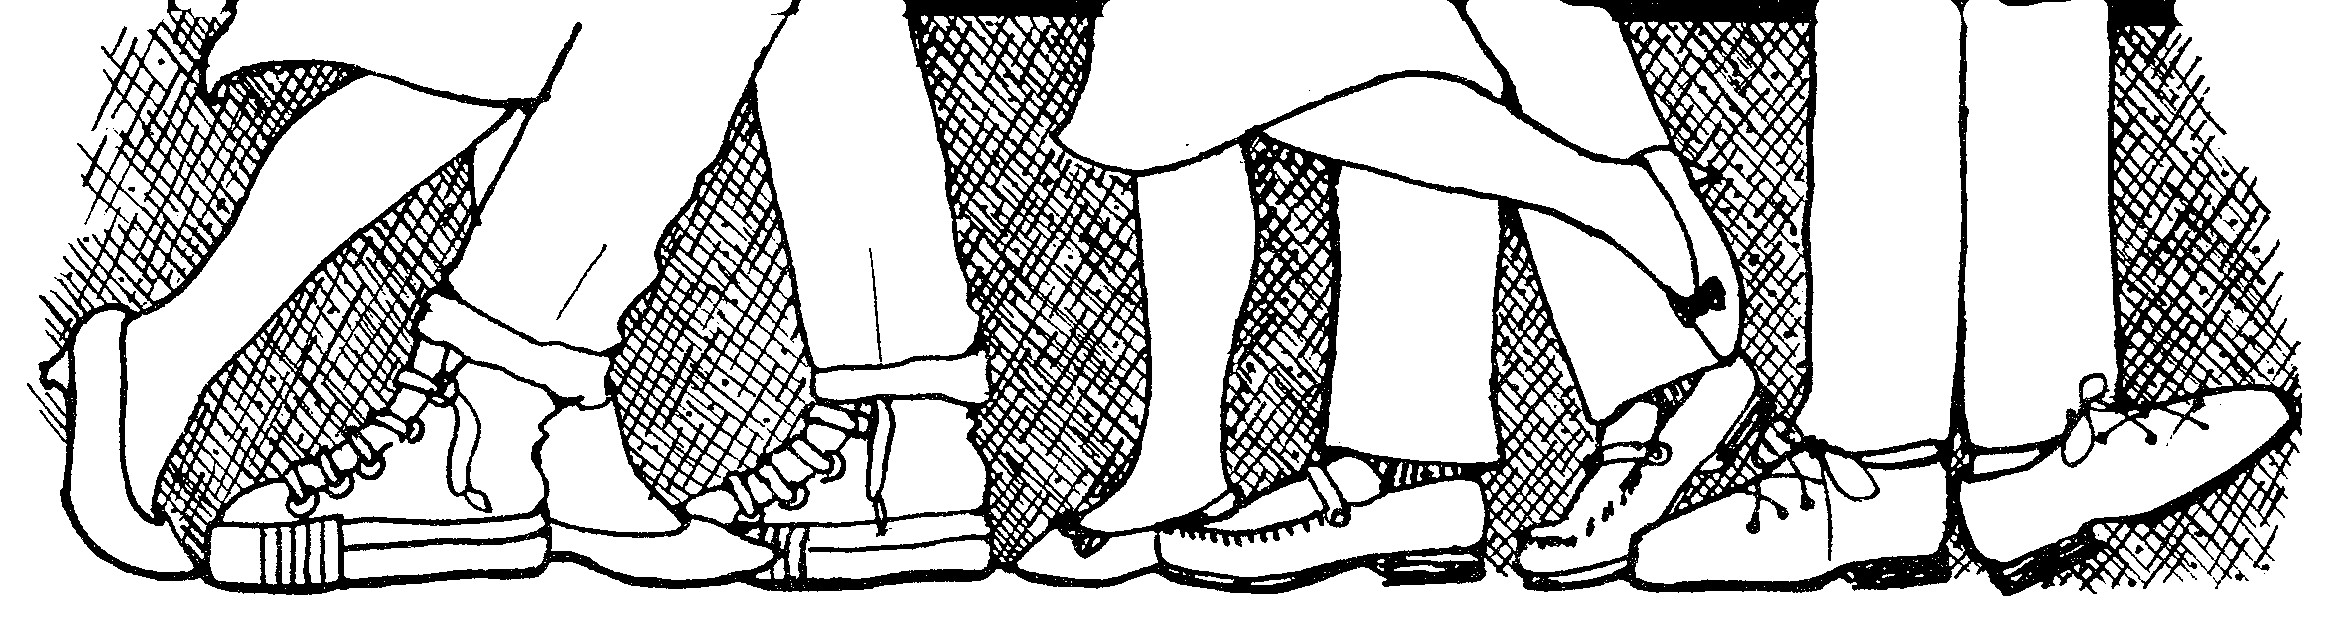 Feet on the ground clipart black and white image Wonderful Walking Feet Clipart Clip Art Of In | Clipart image